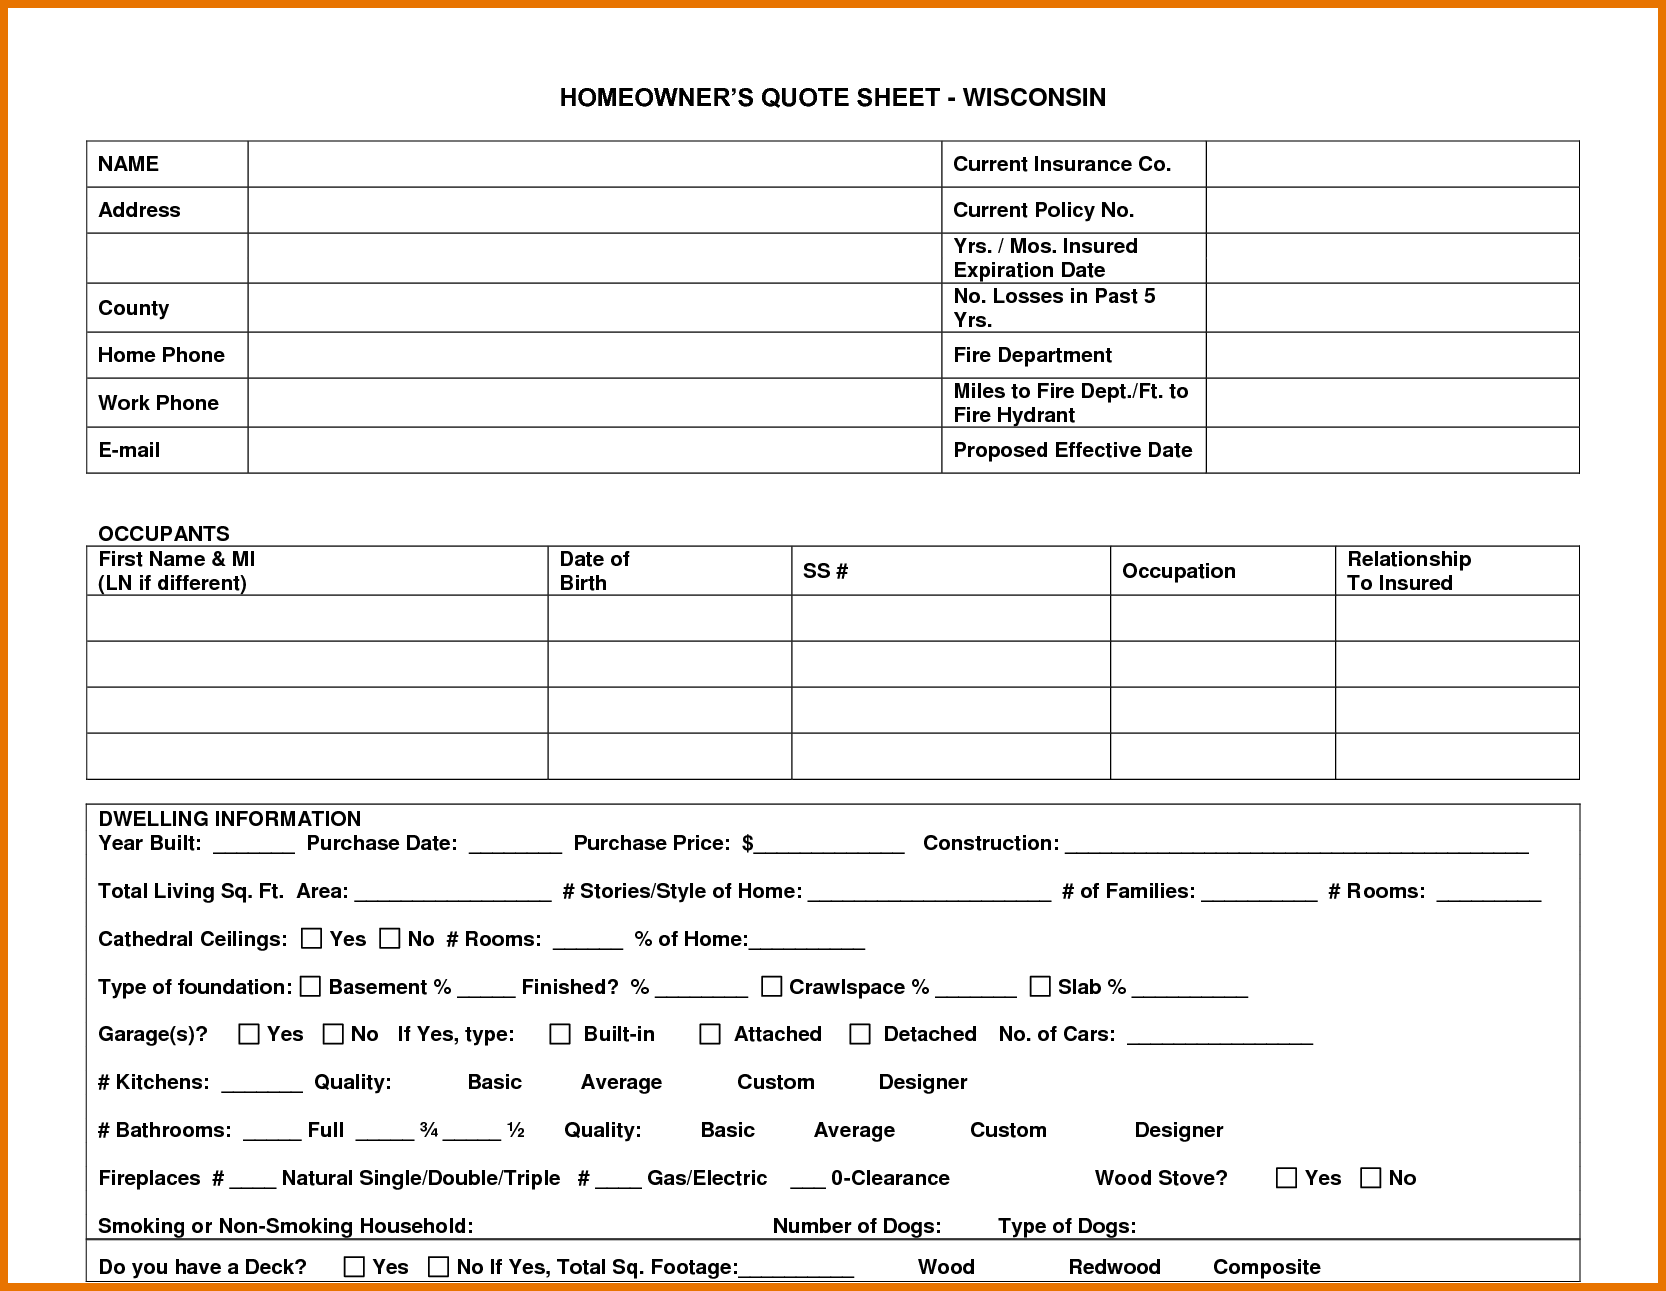 home insurance quote sheet template_11